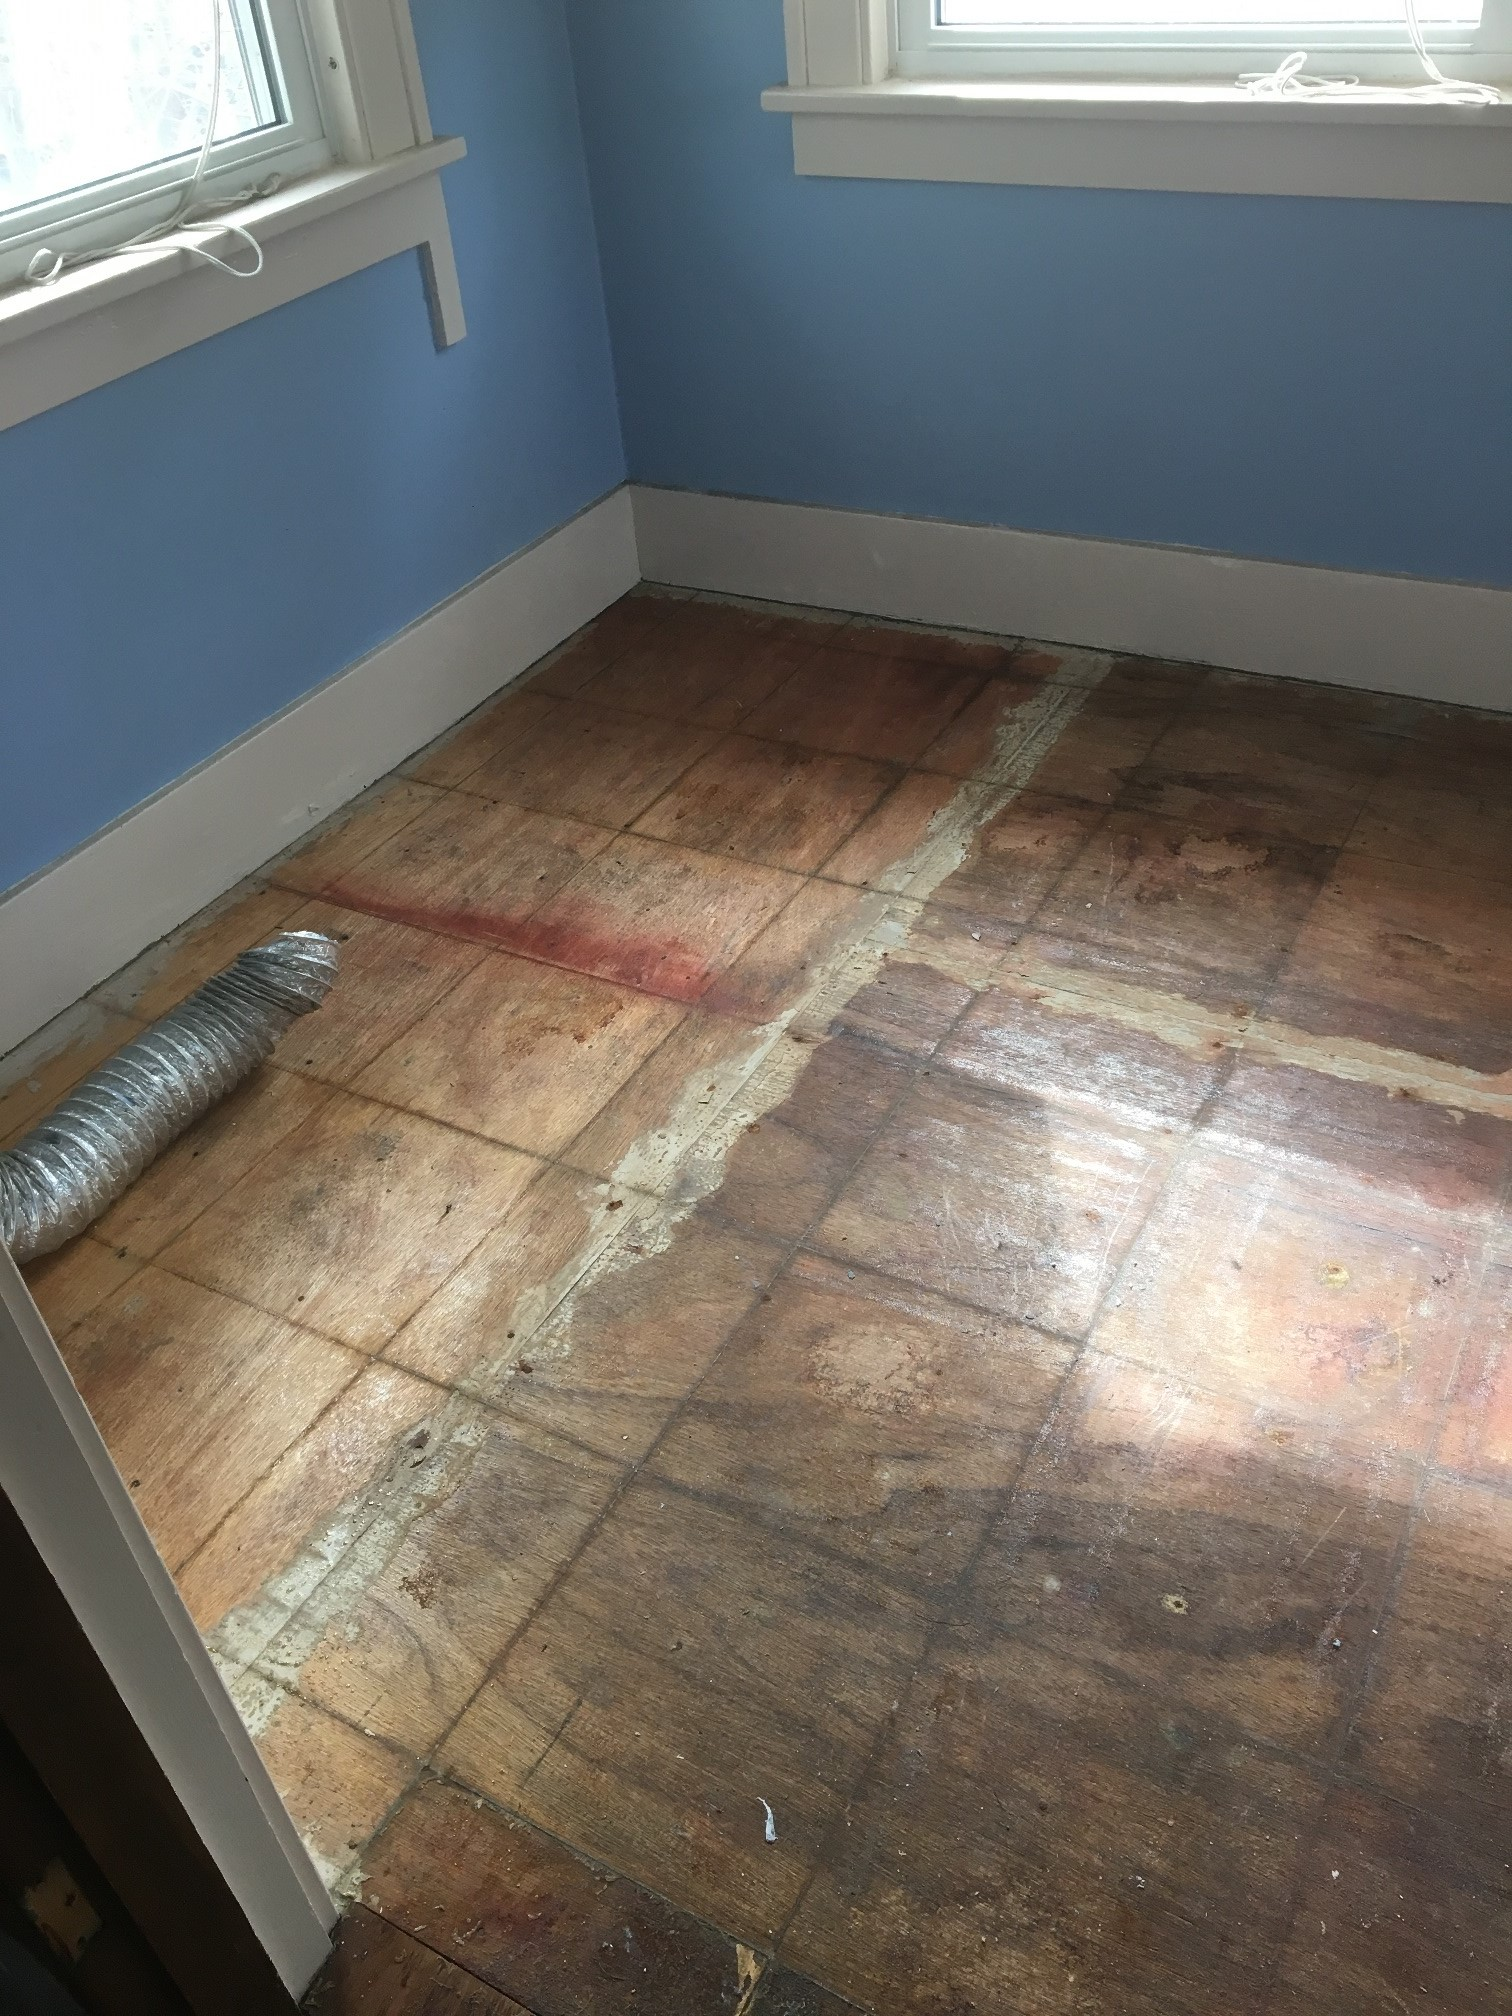 How to install groutable tile without burning your house down if there are any lumps in the subfloor do some extra research before you proceed a clean flat subfloor is crucial dailygadgetfo Gallery